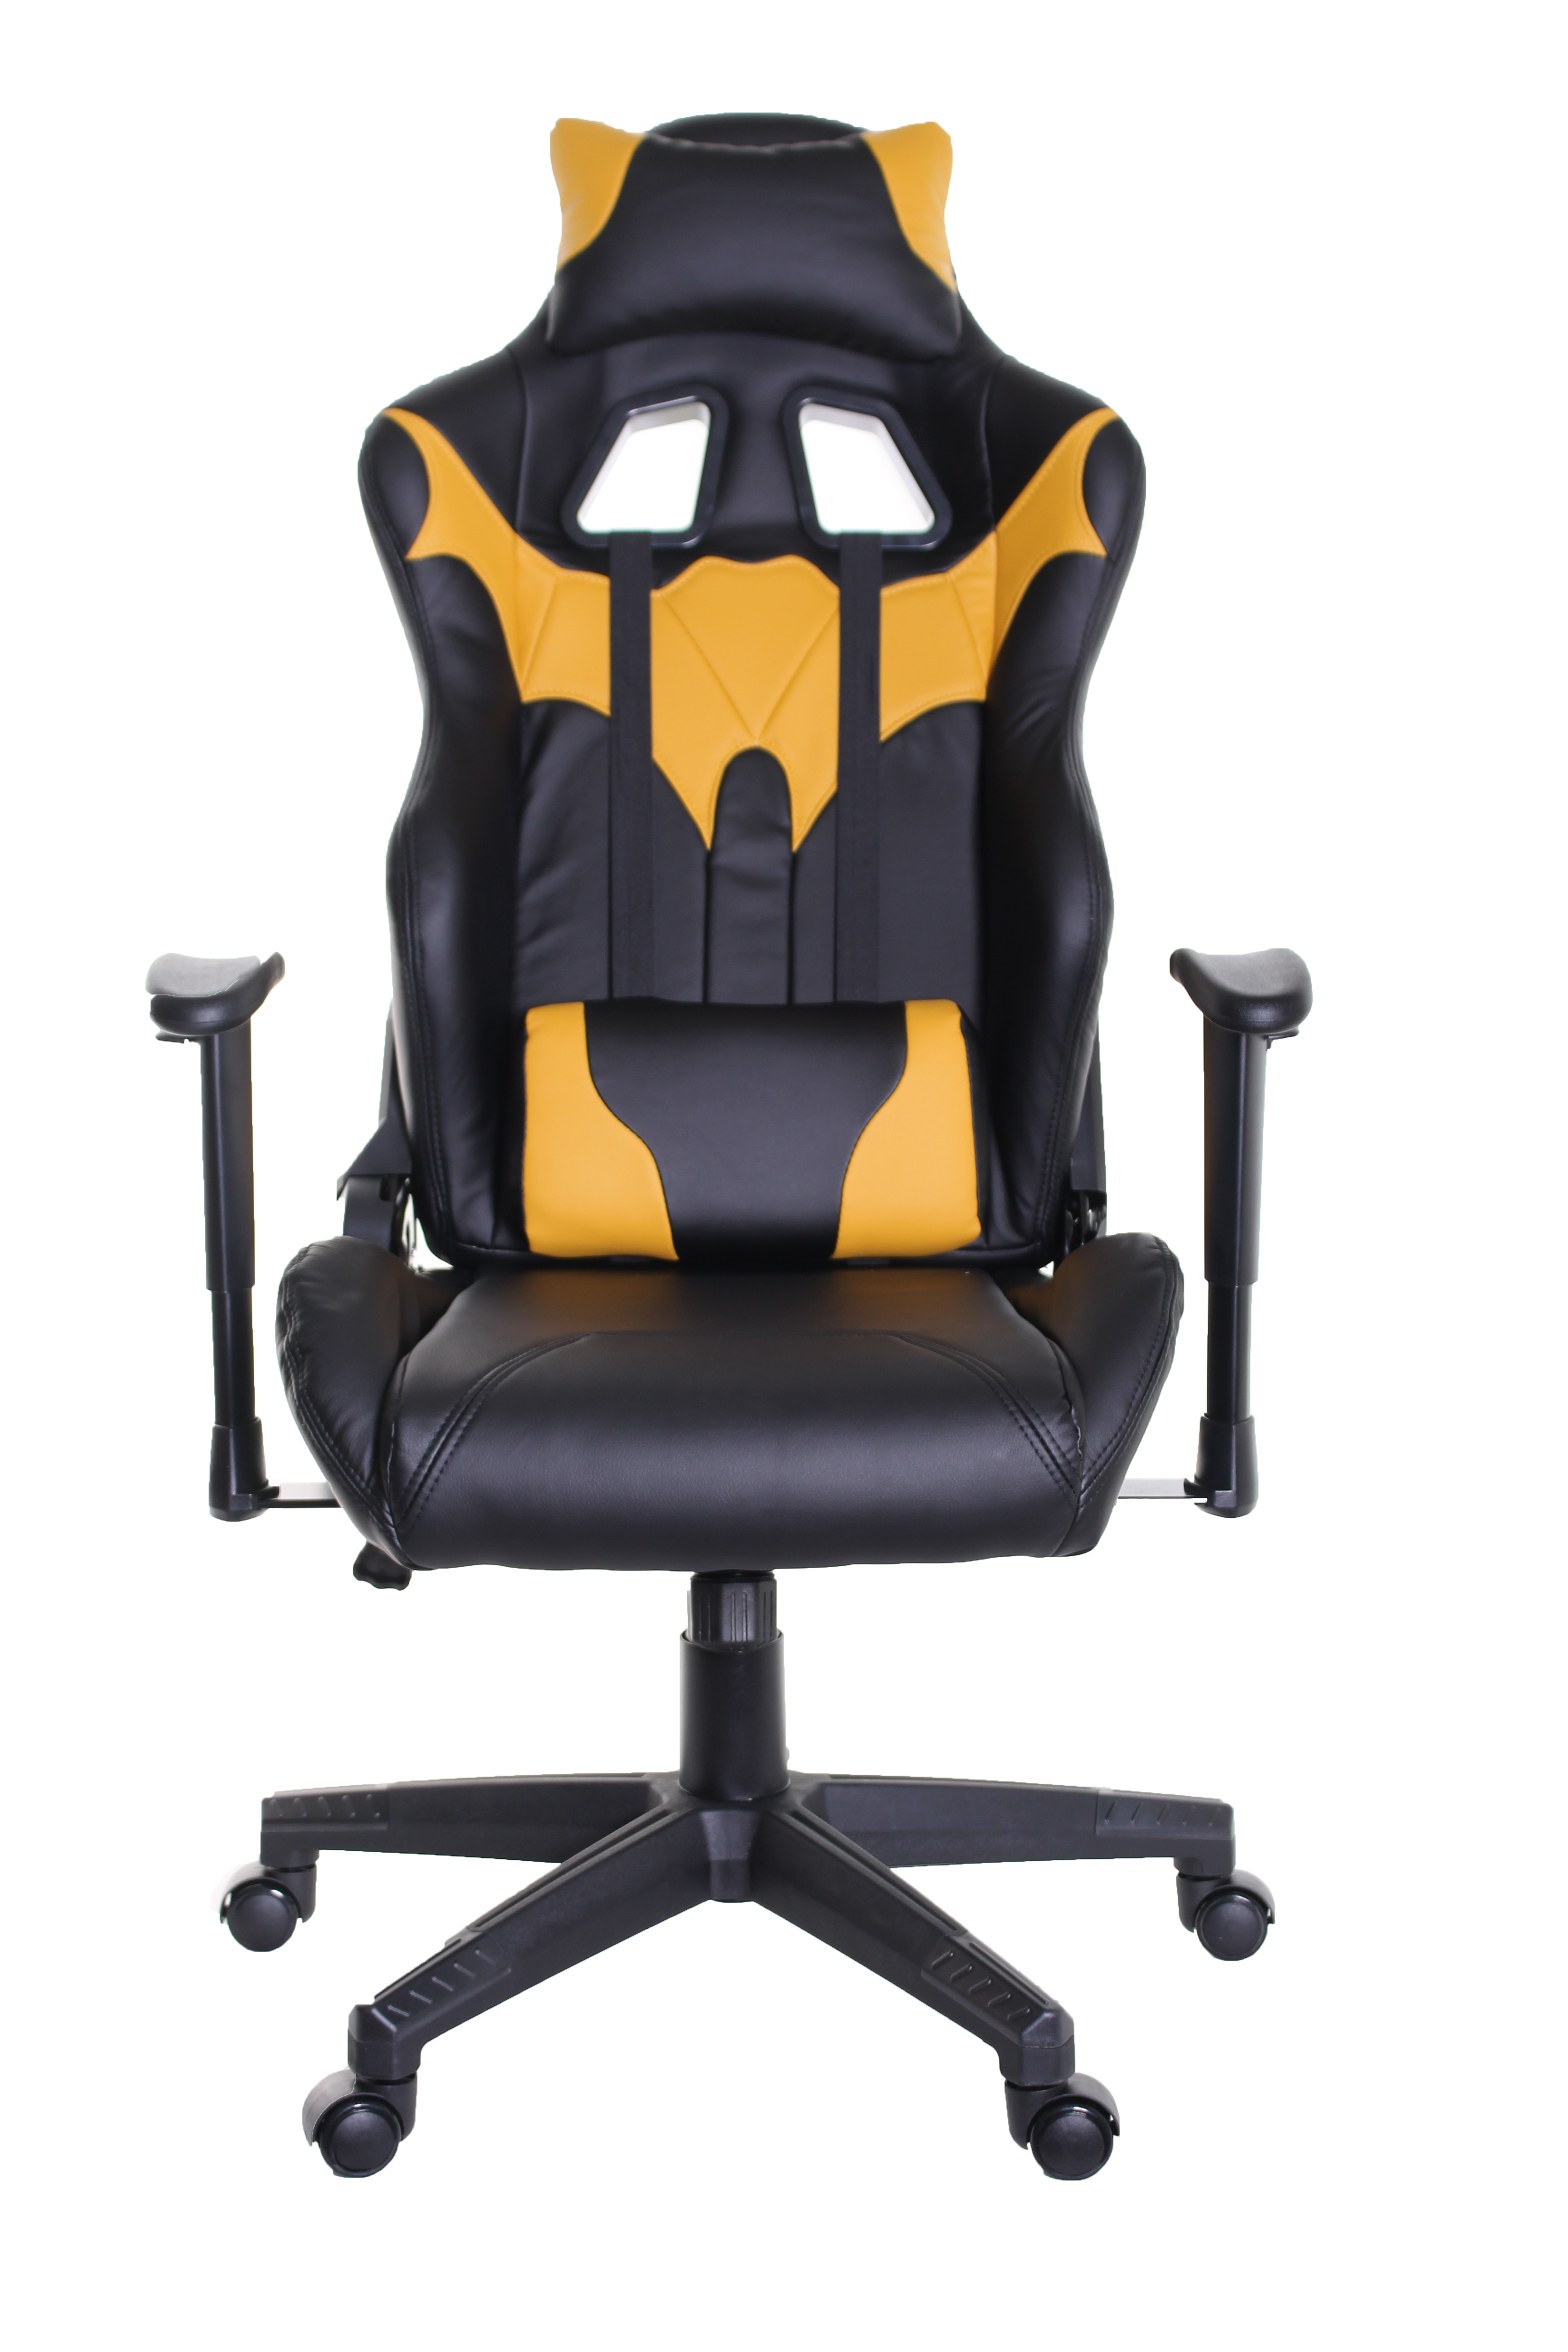 Imperator Works Brand Gaming Chair Diy Dining Room Covers Timeoffice Batman Series Ergonomic Video Race Car Style Yellow